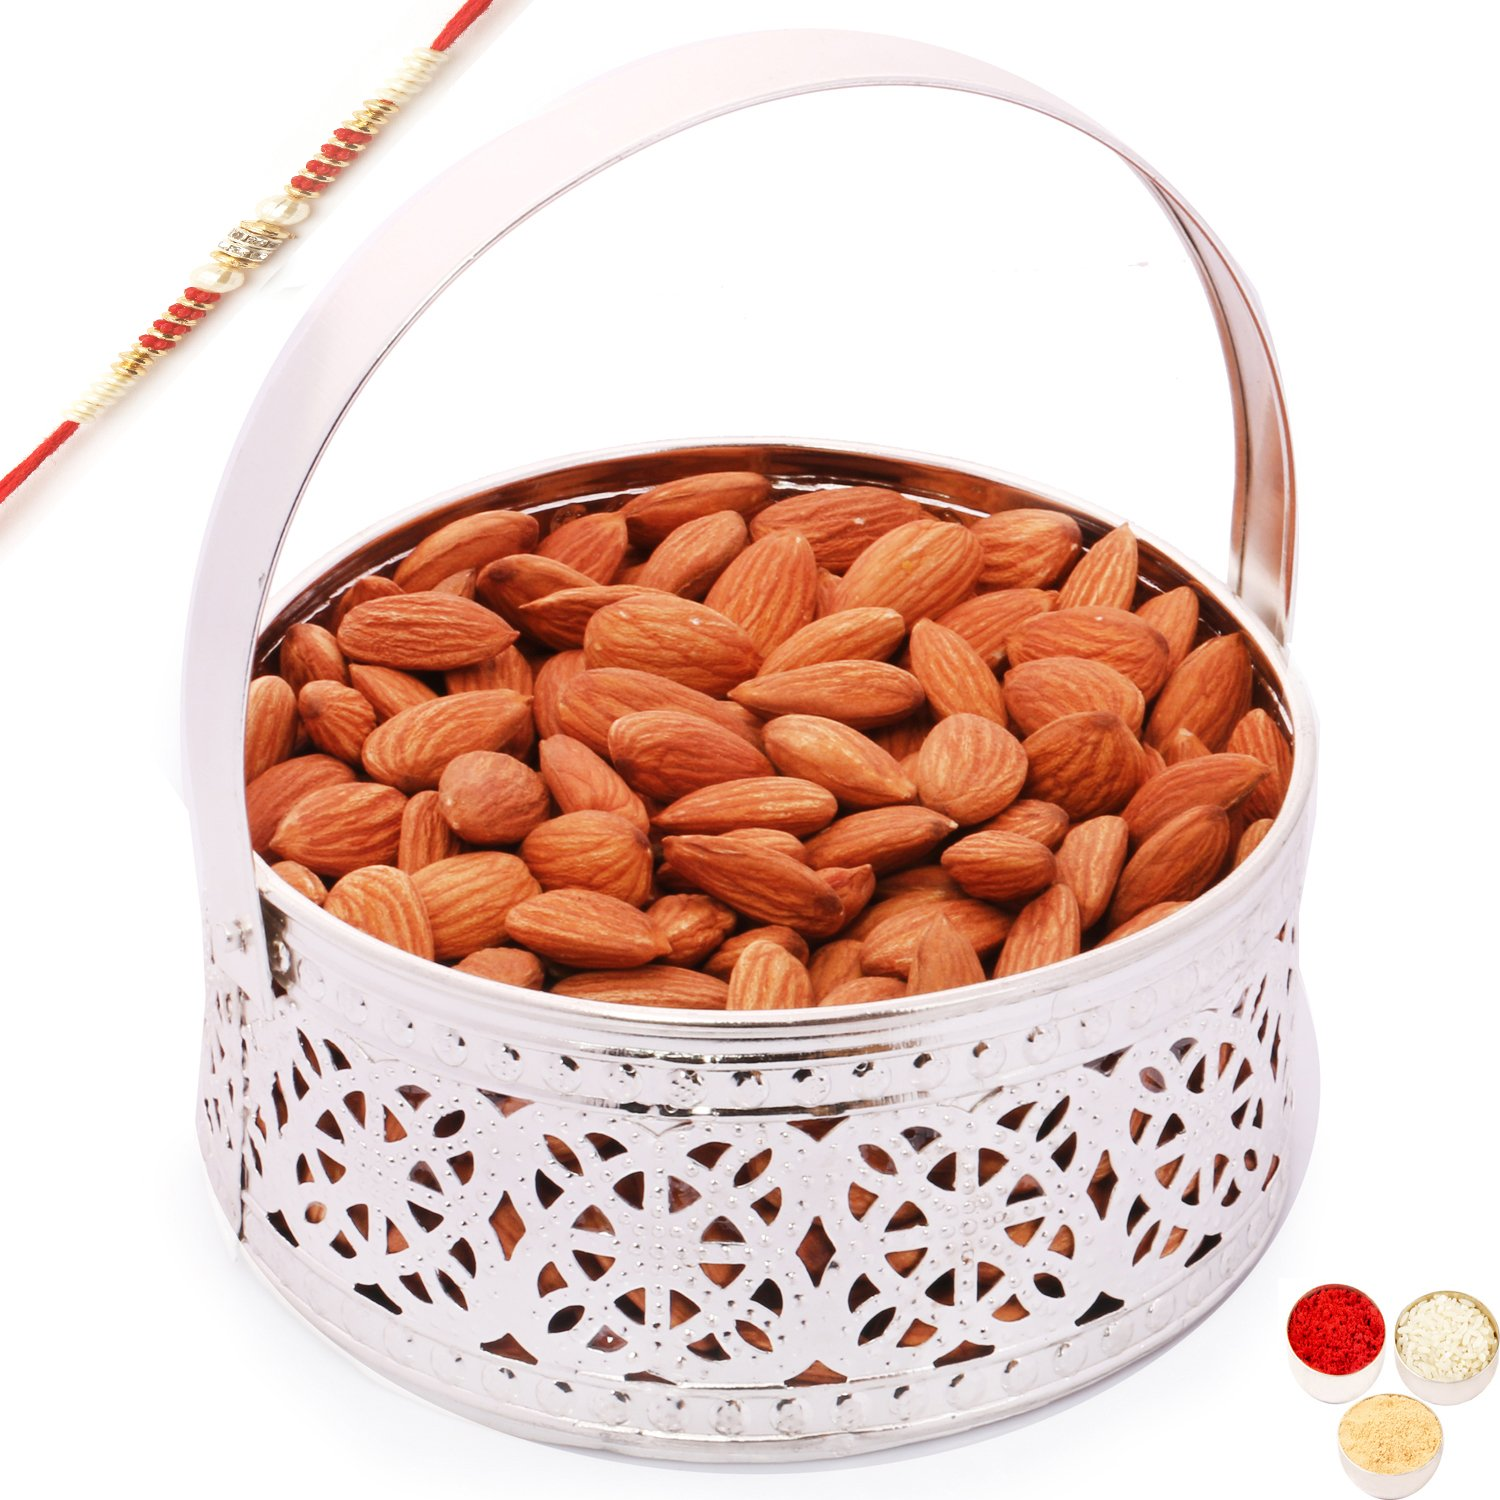 Ghasitaram Gifts Rakhi Gifts For Brother Rakhi Dryfruits Rakhi Dry fruits Hamper - Silver Small Basket with with Red Pearl Rakhi and Almonds by Ghasitaram Gifts (Image #1)